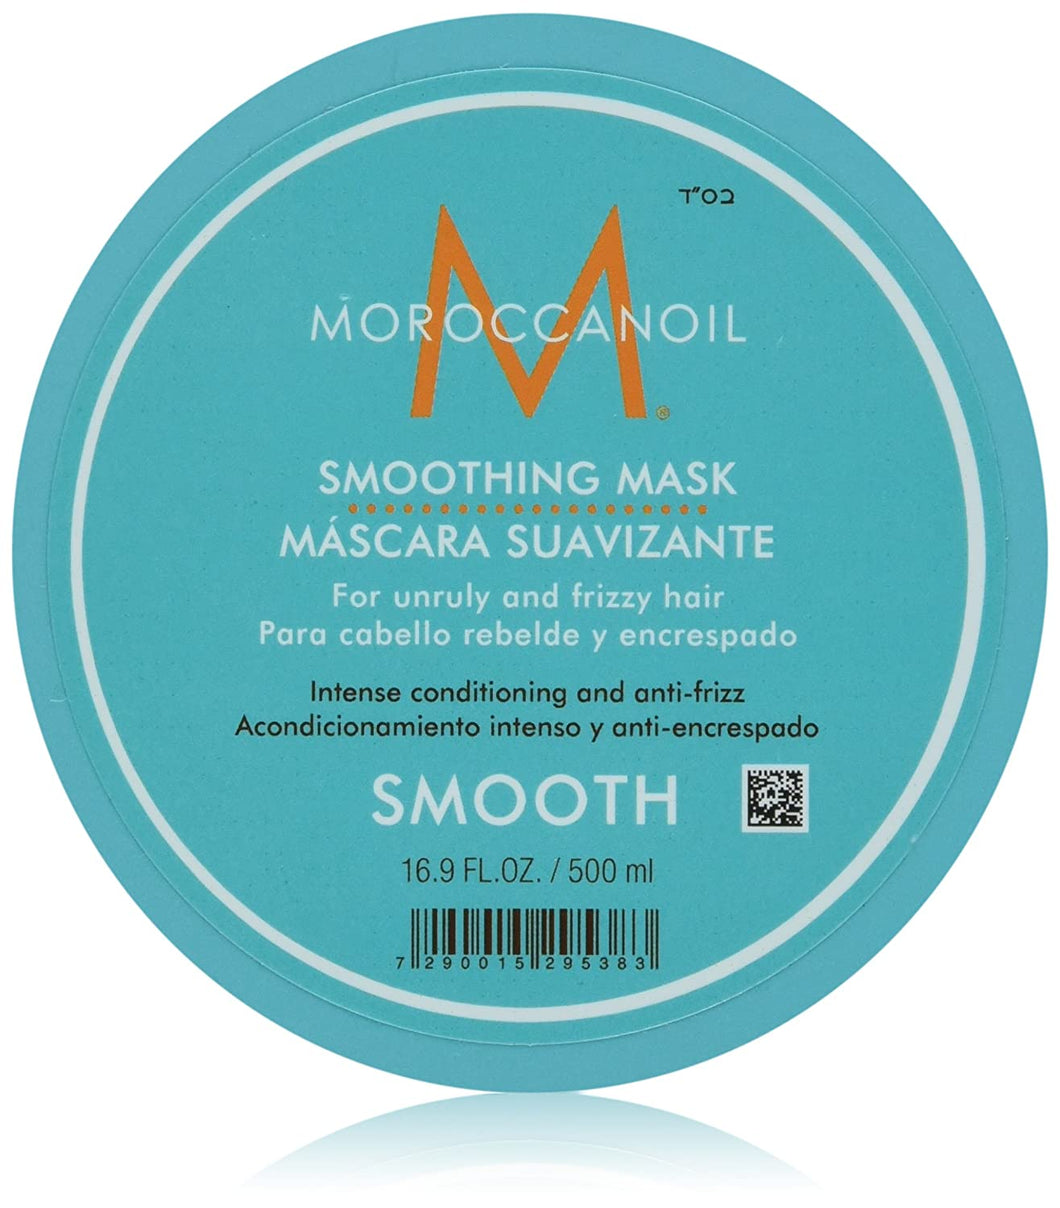 Moroccanoil Smoothing Mask (500ml)